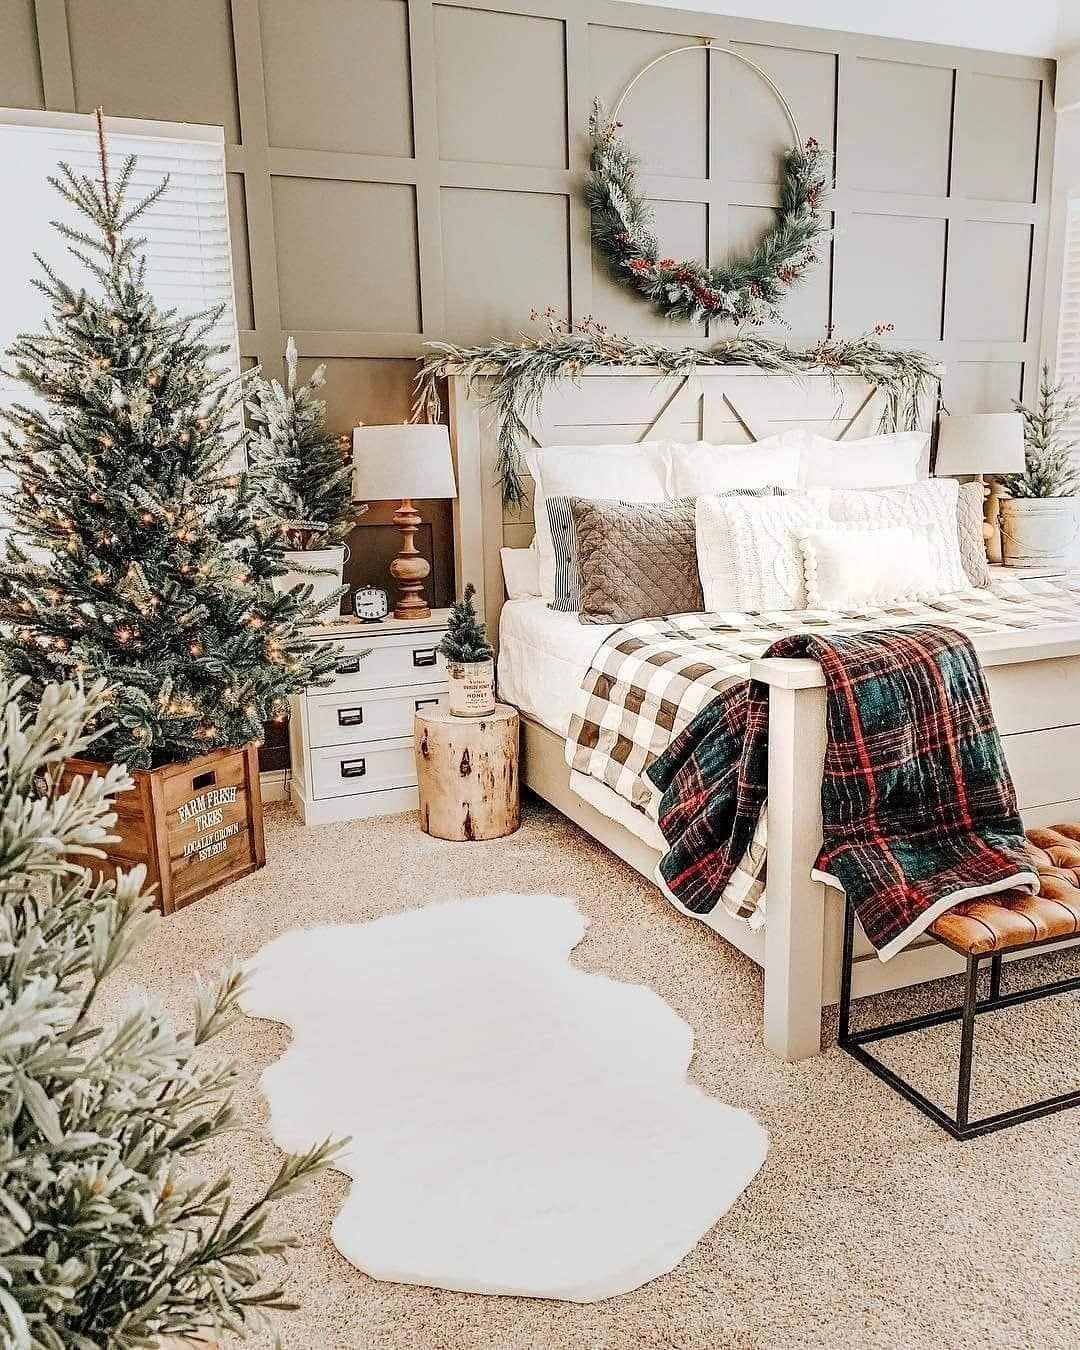 Pin By Angie Miller On Holidays Bedroom Decor Christmas Bedroom Christmas Decorations Bedroom